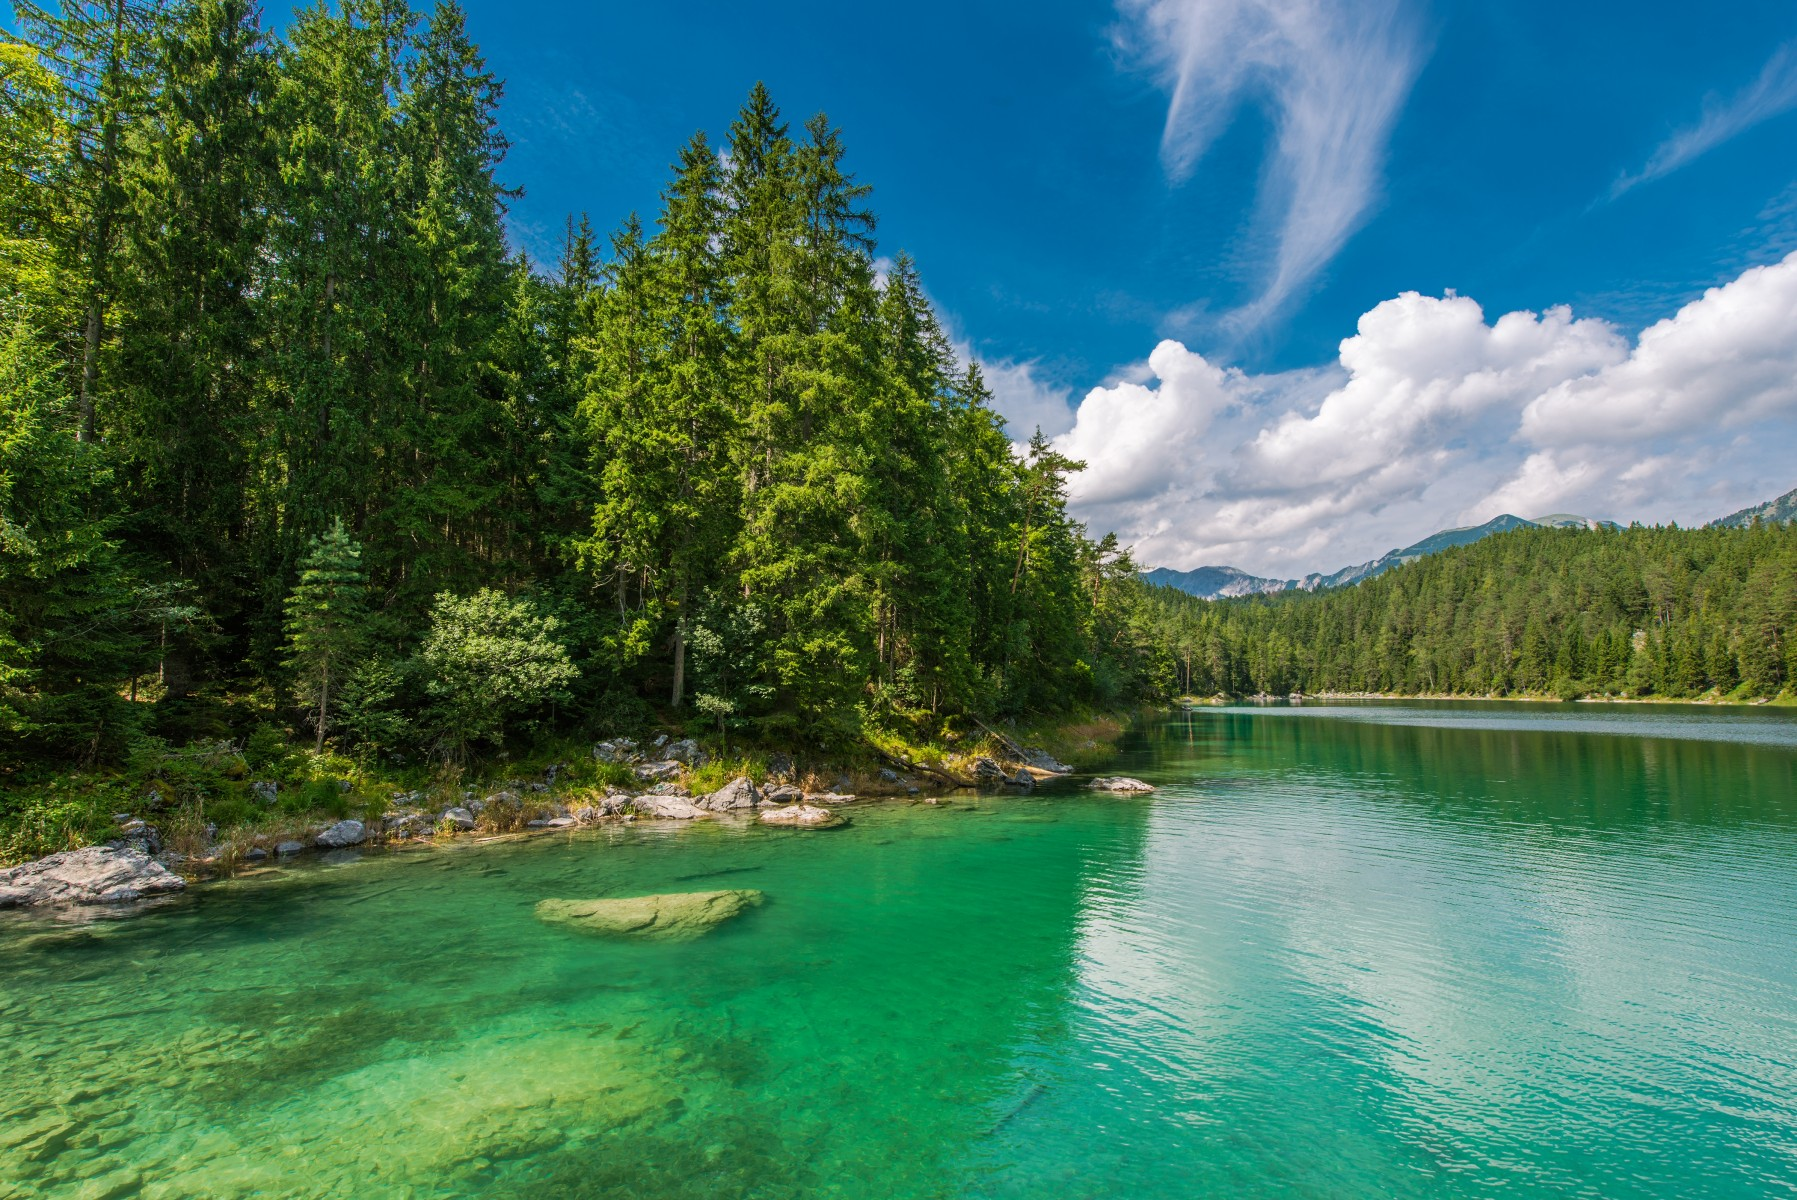 Natural sights _Eibsee Lake in Bavaria Germany